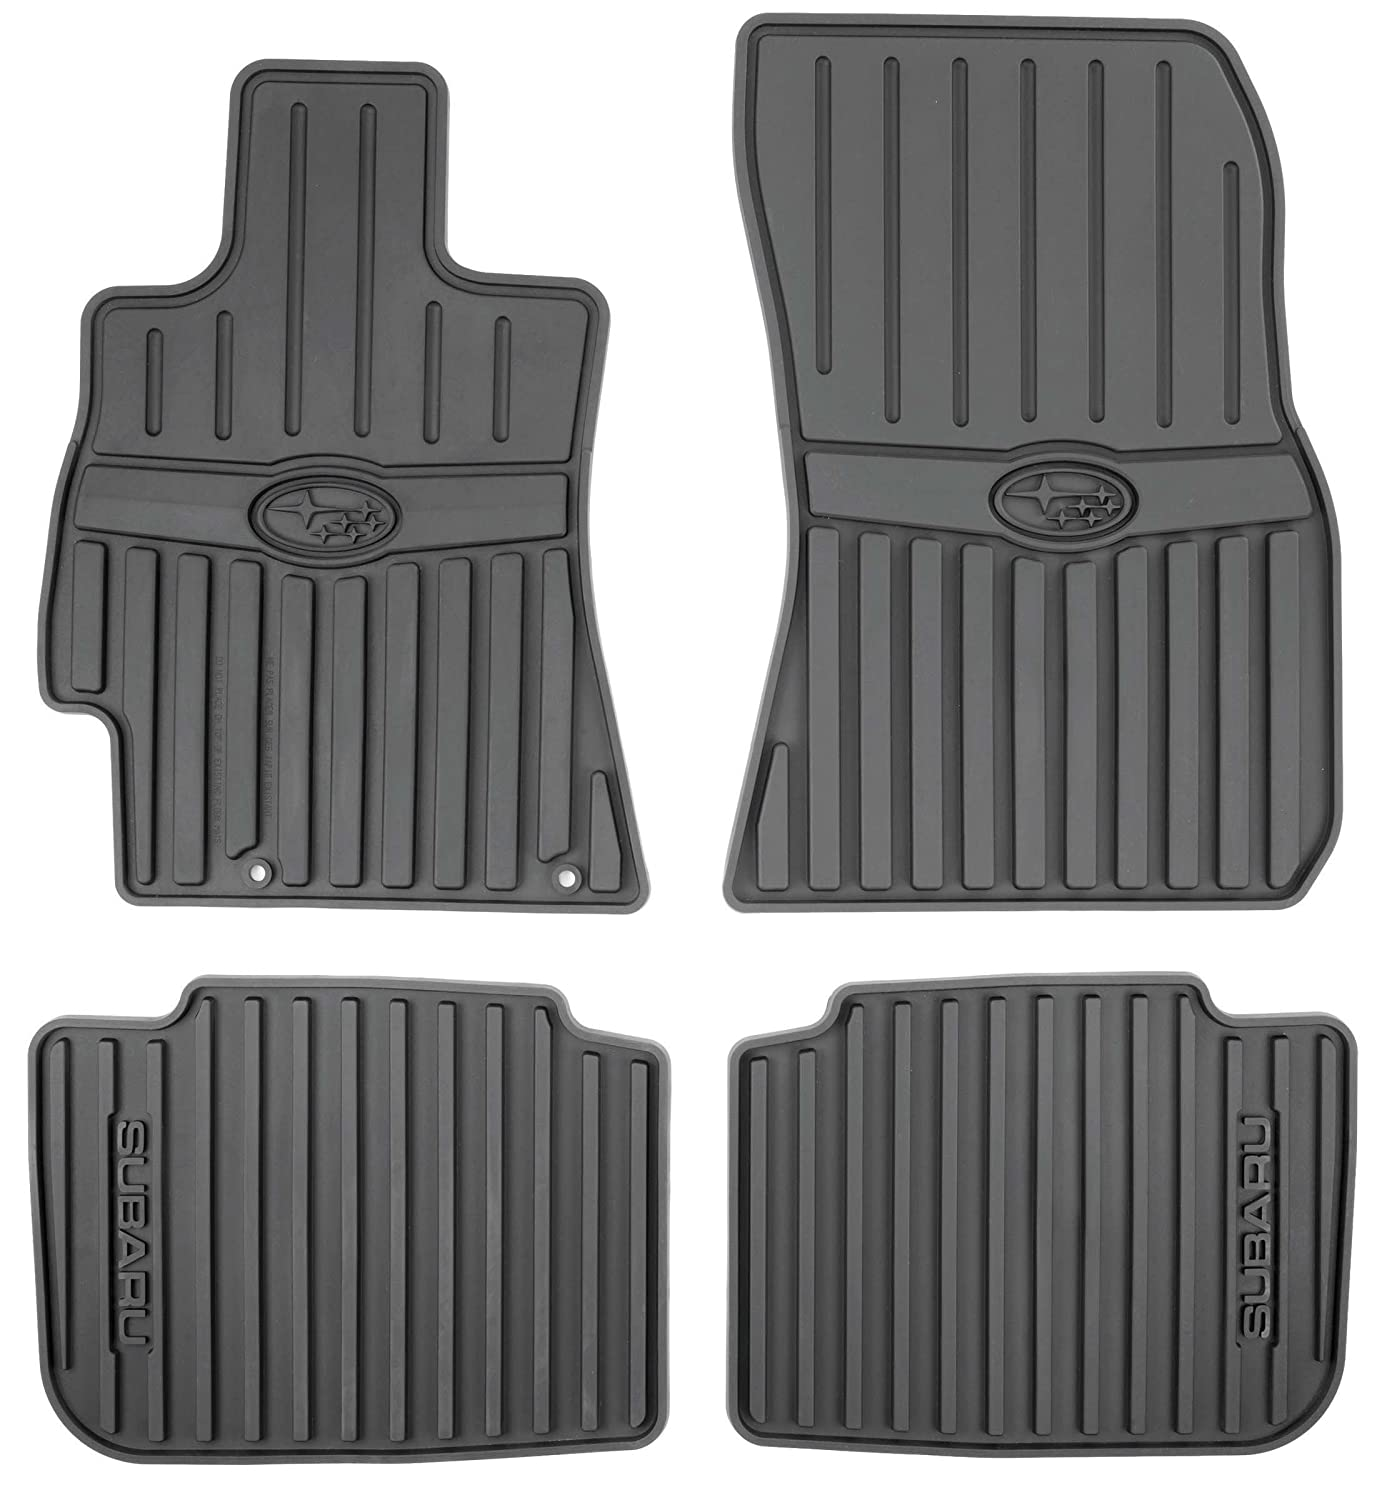 Rubber floor mats uk - Rubber Floor Mats Uk 54